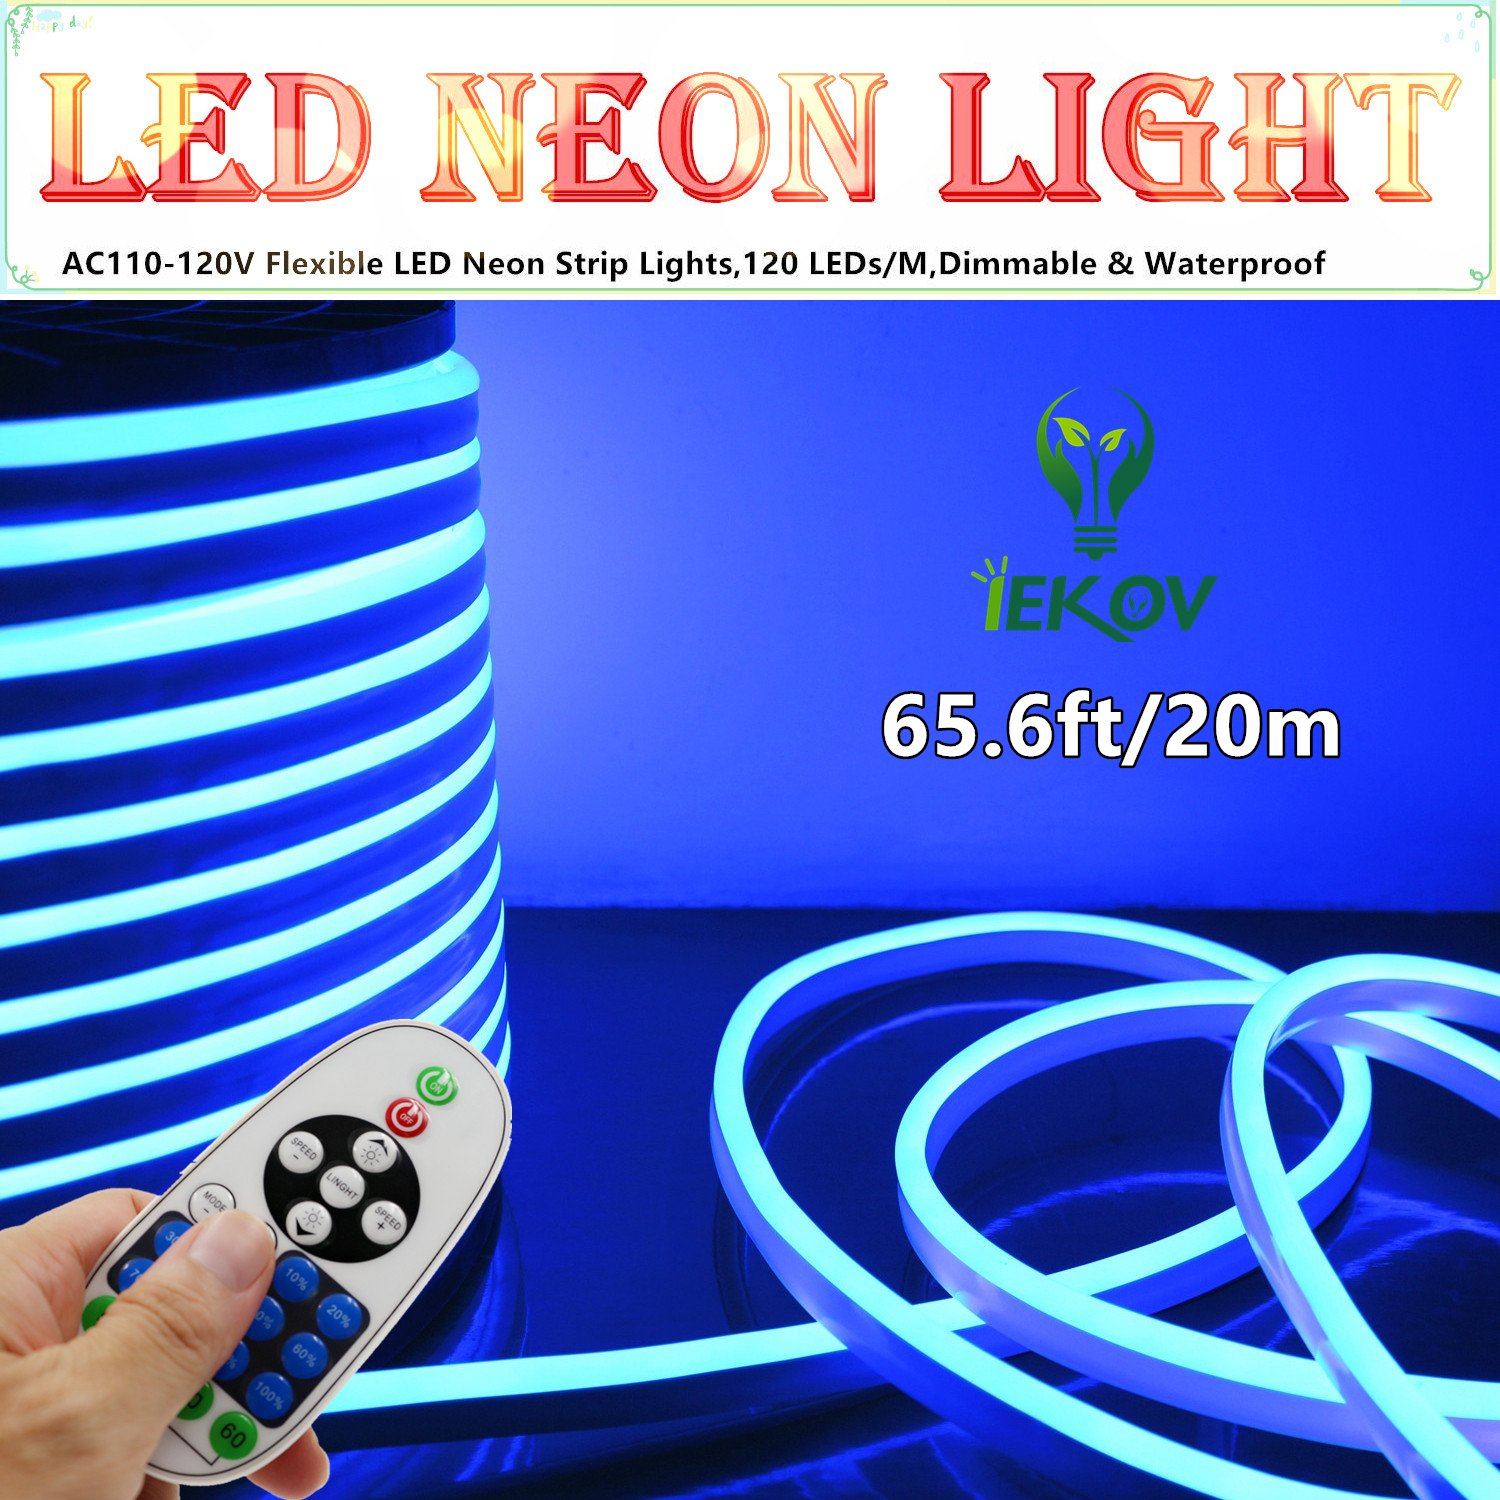 LED NEON LIGHT, IEKOV™ AC 110-120V Flexible LED Neon Strip Lights, 120 LEDs/M, Dimmable, Waterproof 2835 SMD LED Rope Light + Remote Controller for Home Decoration (65.6ft/20m, Blue) by IEKOV